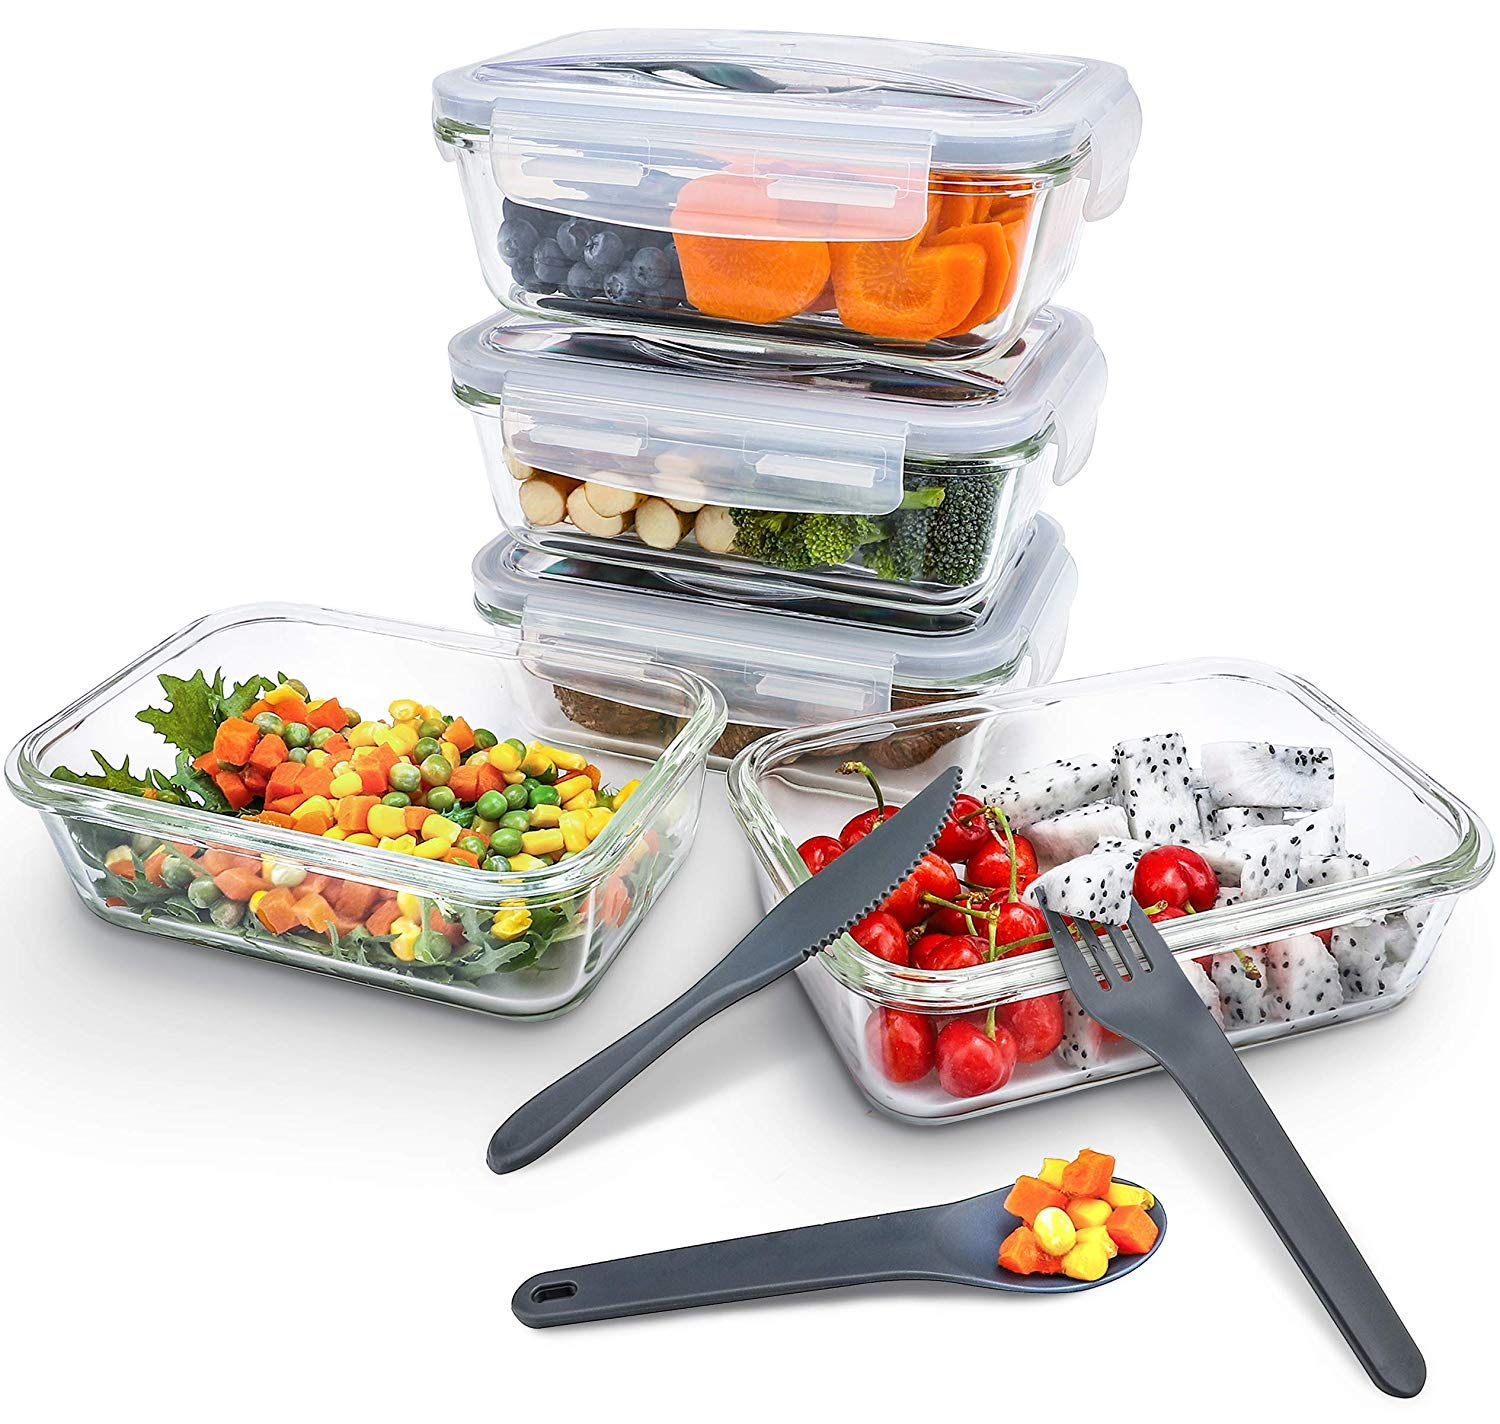 Pohl+Schmitt Glass Meal Prep Containers - Food Prep Candy Dish - Airtight - Portion Control - Bpa-Free